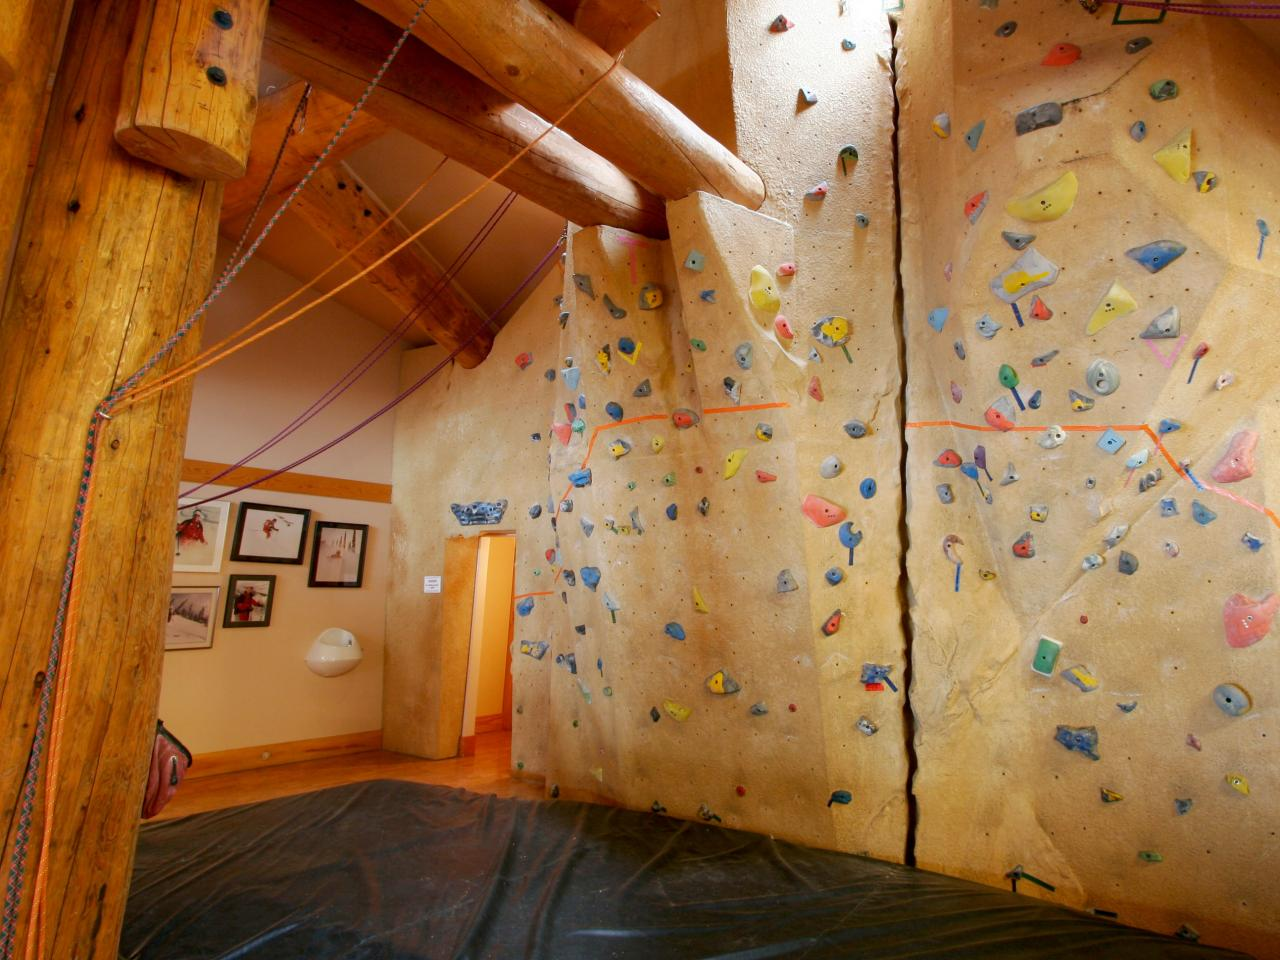 World-class climbing wall located in the Guides Haus at Mike Wiegele Heli-skiing Resort.